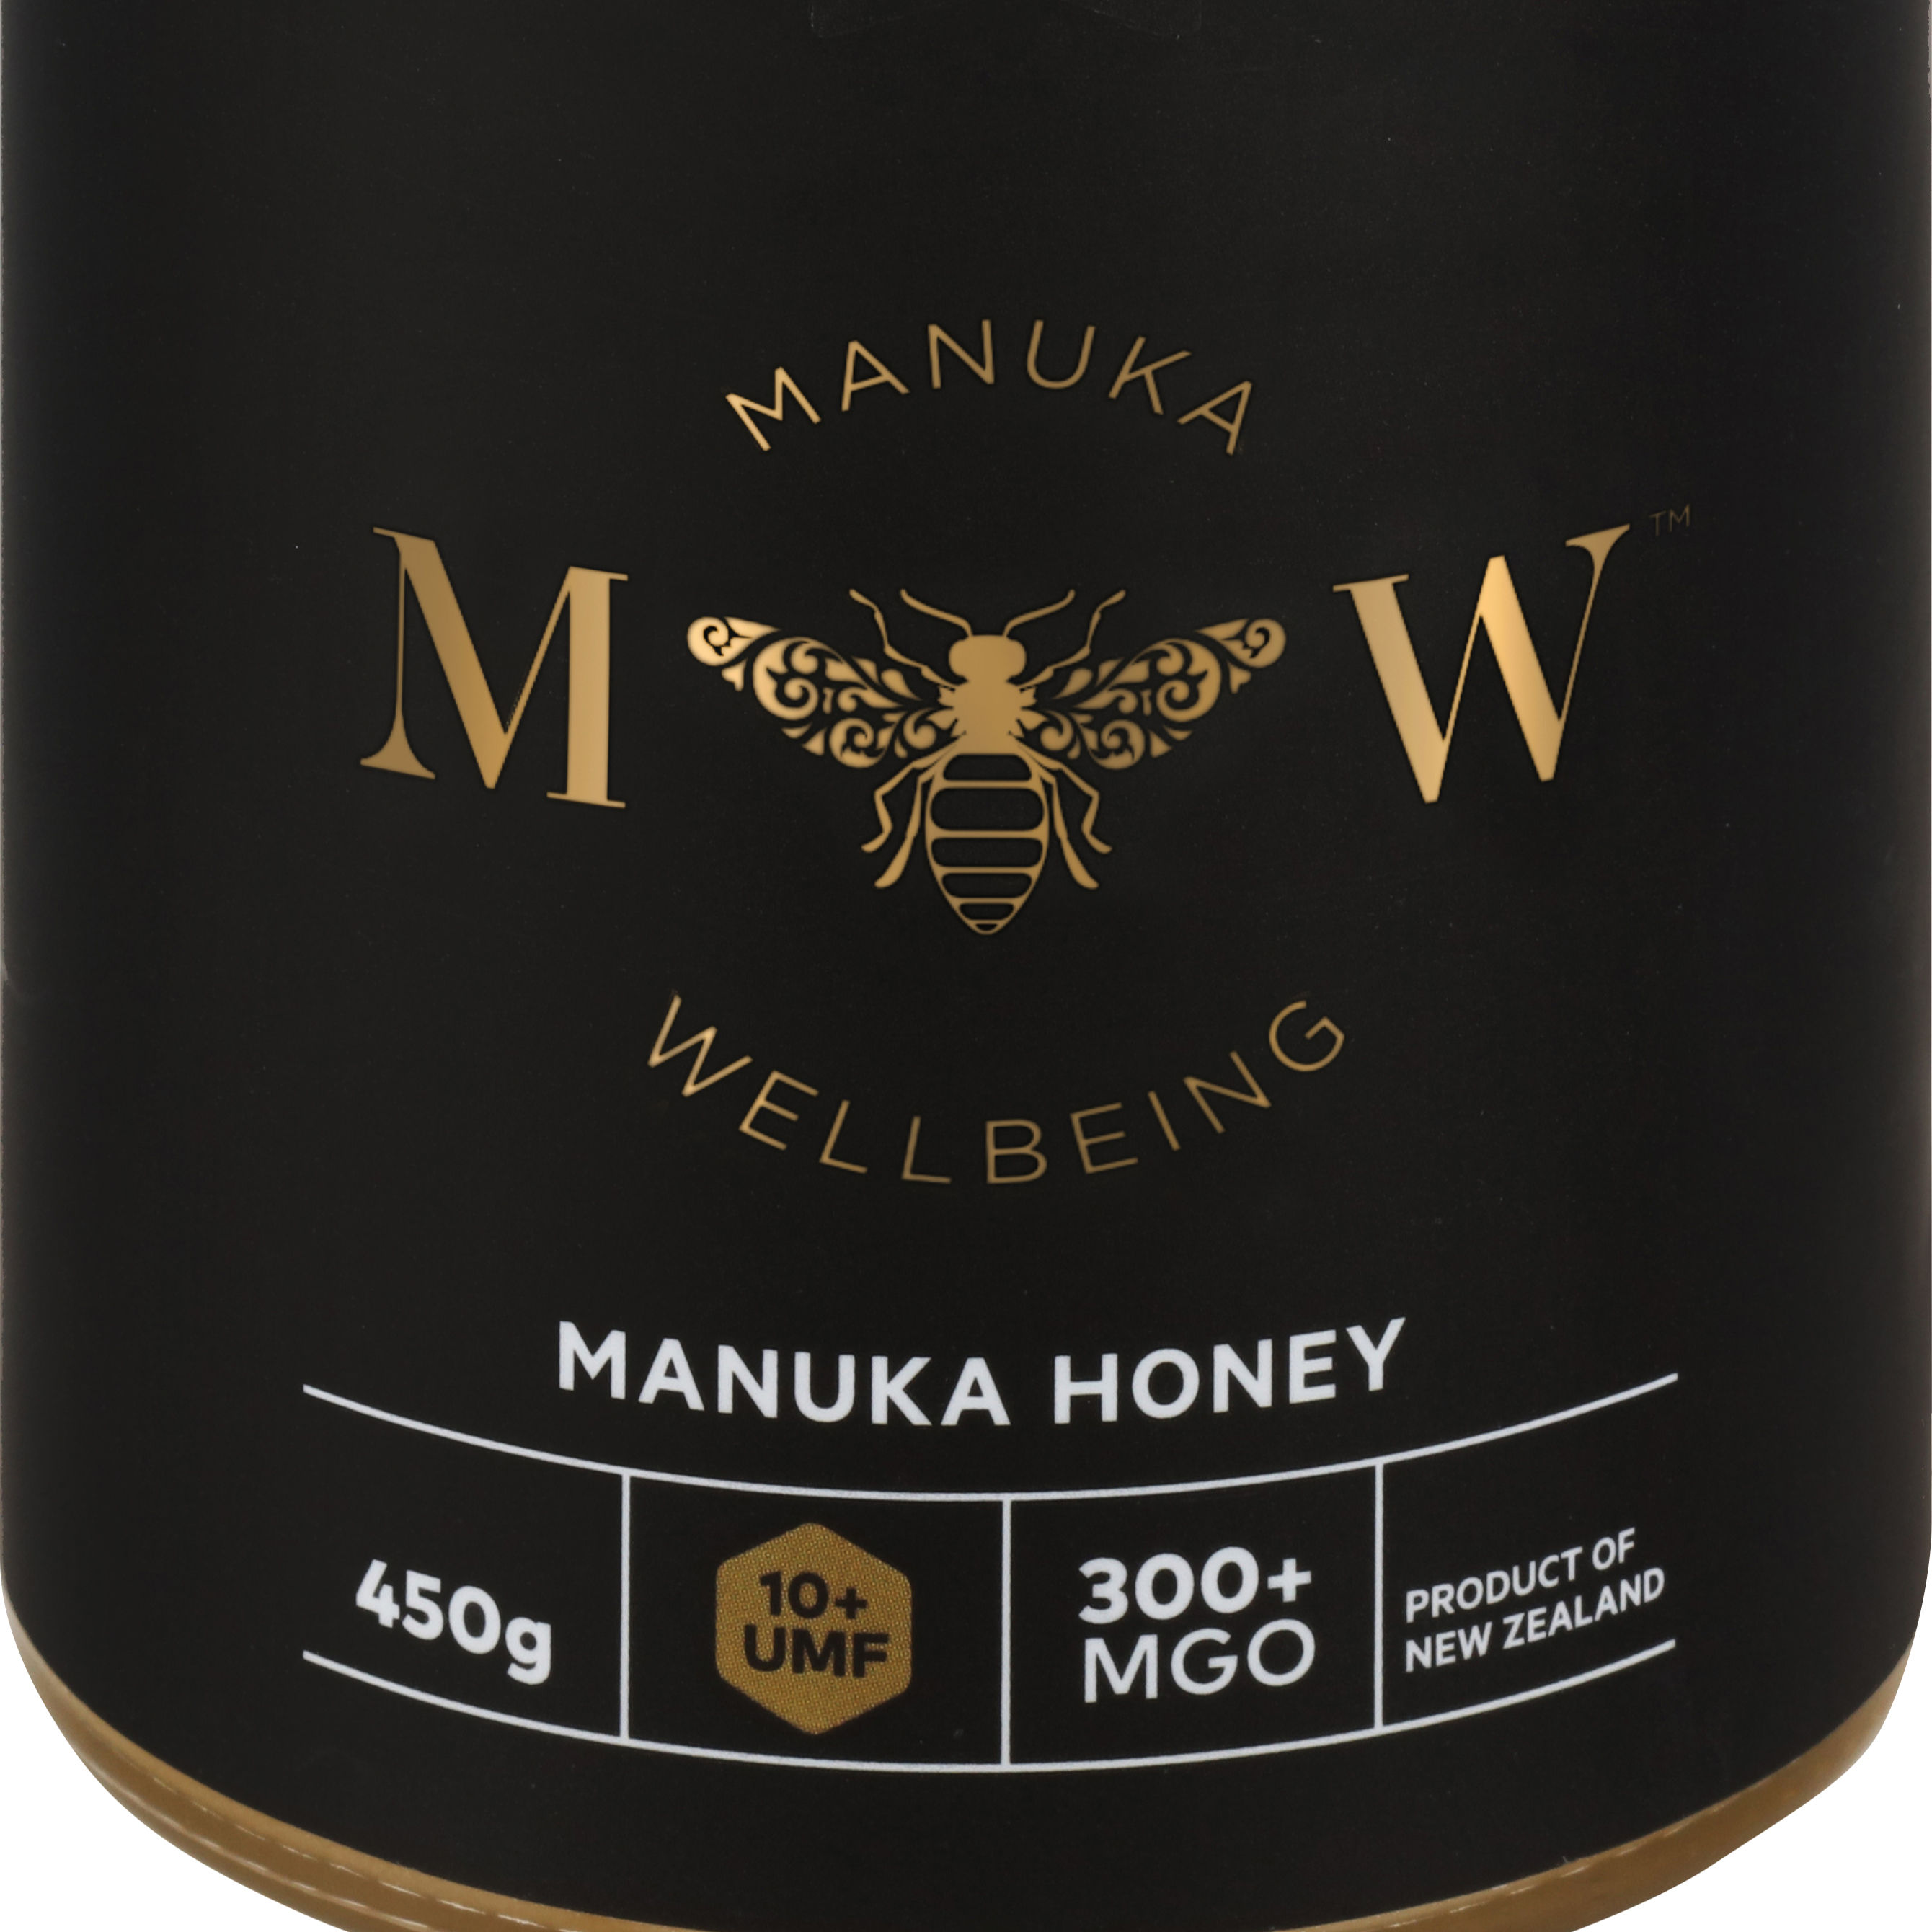 Manukawellbeing - 450 Grams Manuka Honey UMF 10+ MGO 300 - 100% Pure New Zealand & Halal